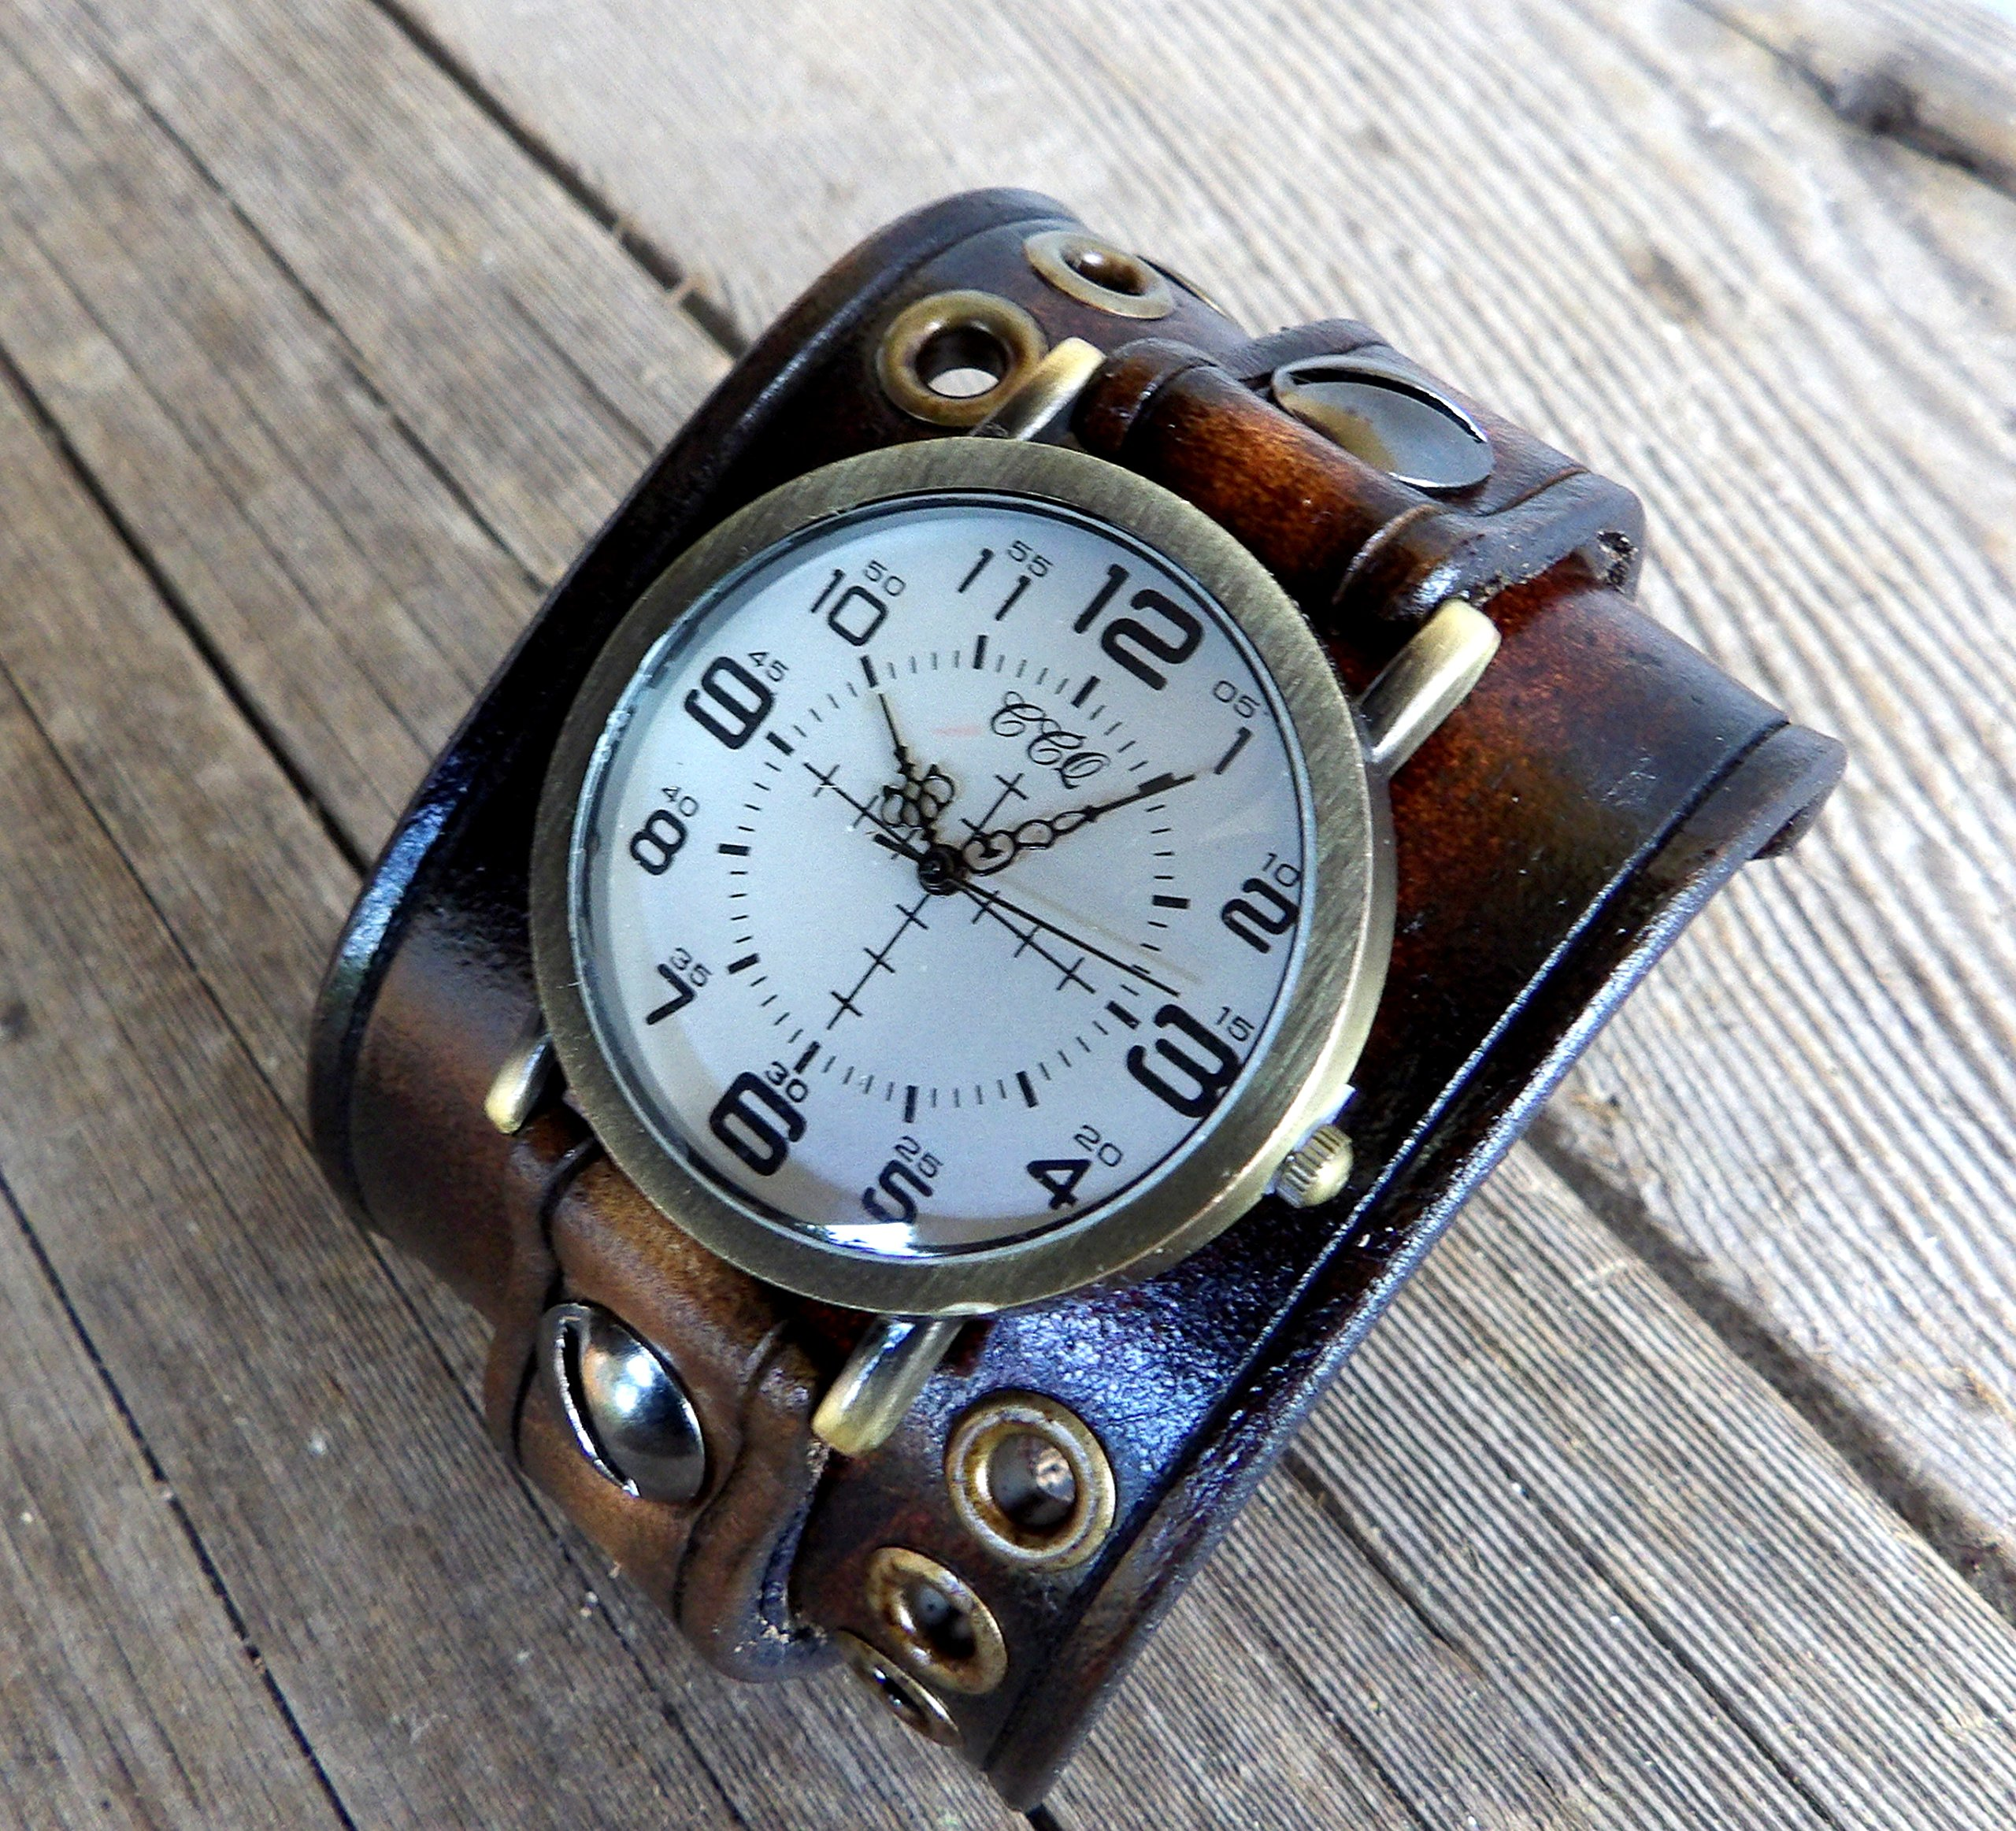 Unisex leather watch, Dark brown leather cuff, Bracelet watch, Leather watch cuff, Men's watch, Women's watch,